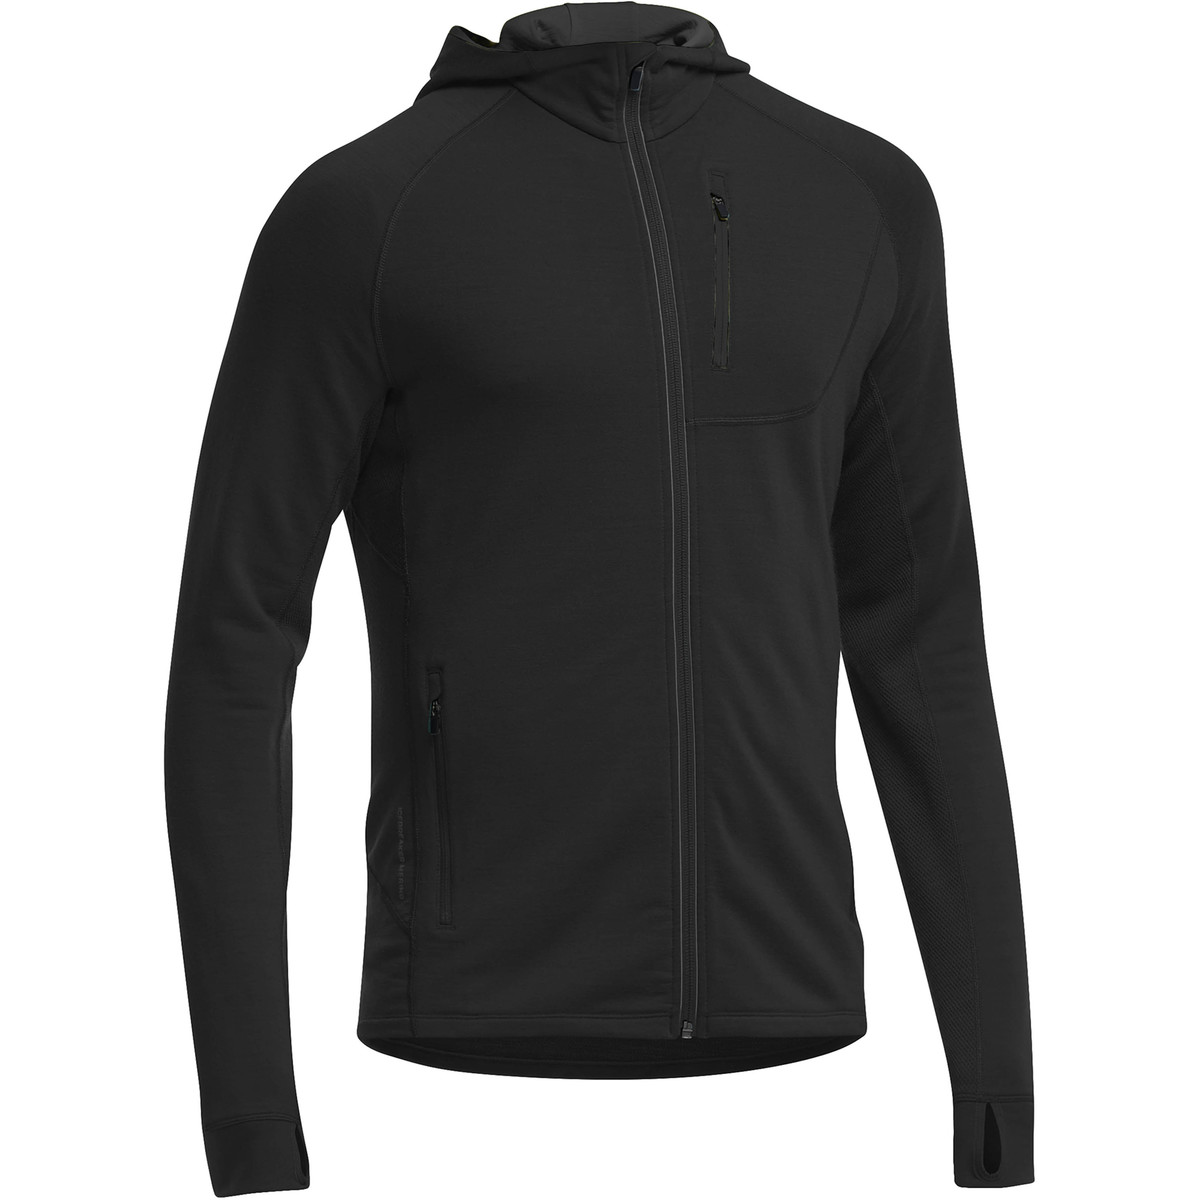 photo: Icebreaker Quantum Hood long sleeve performance top